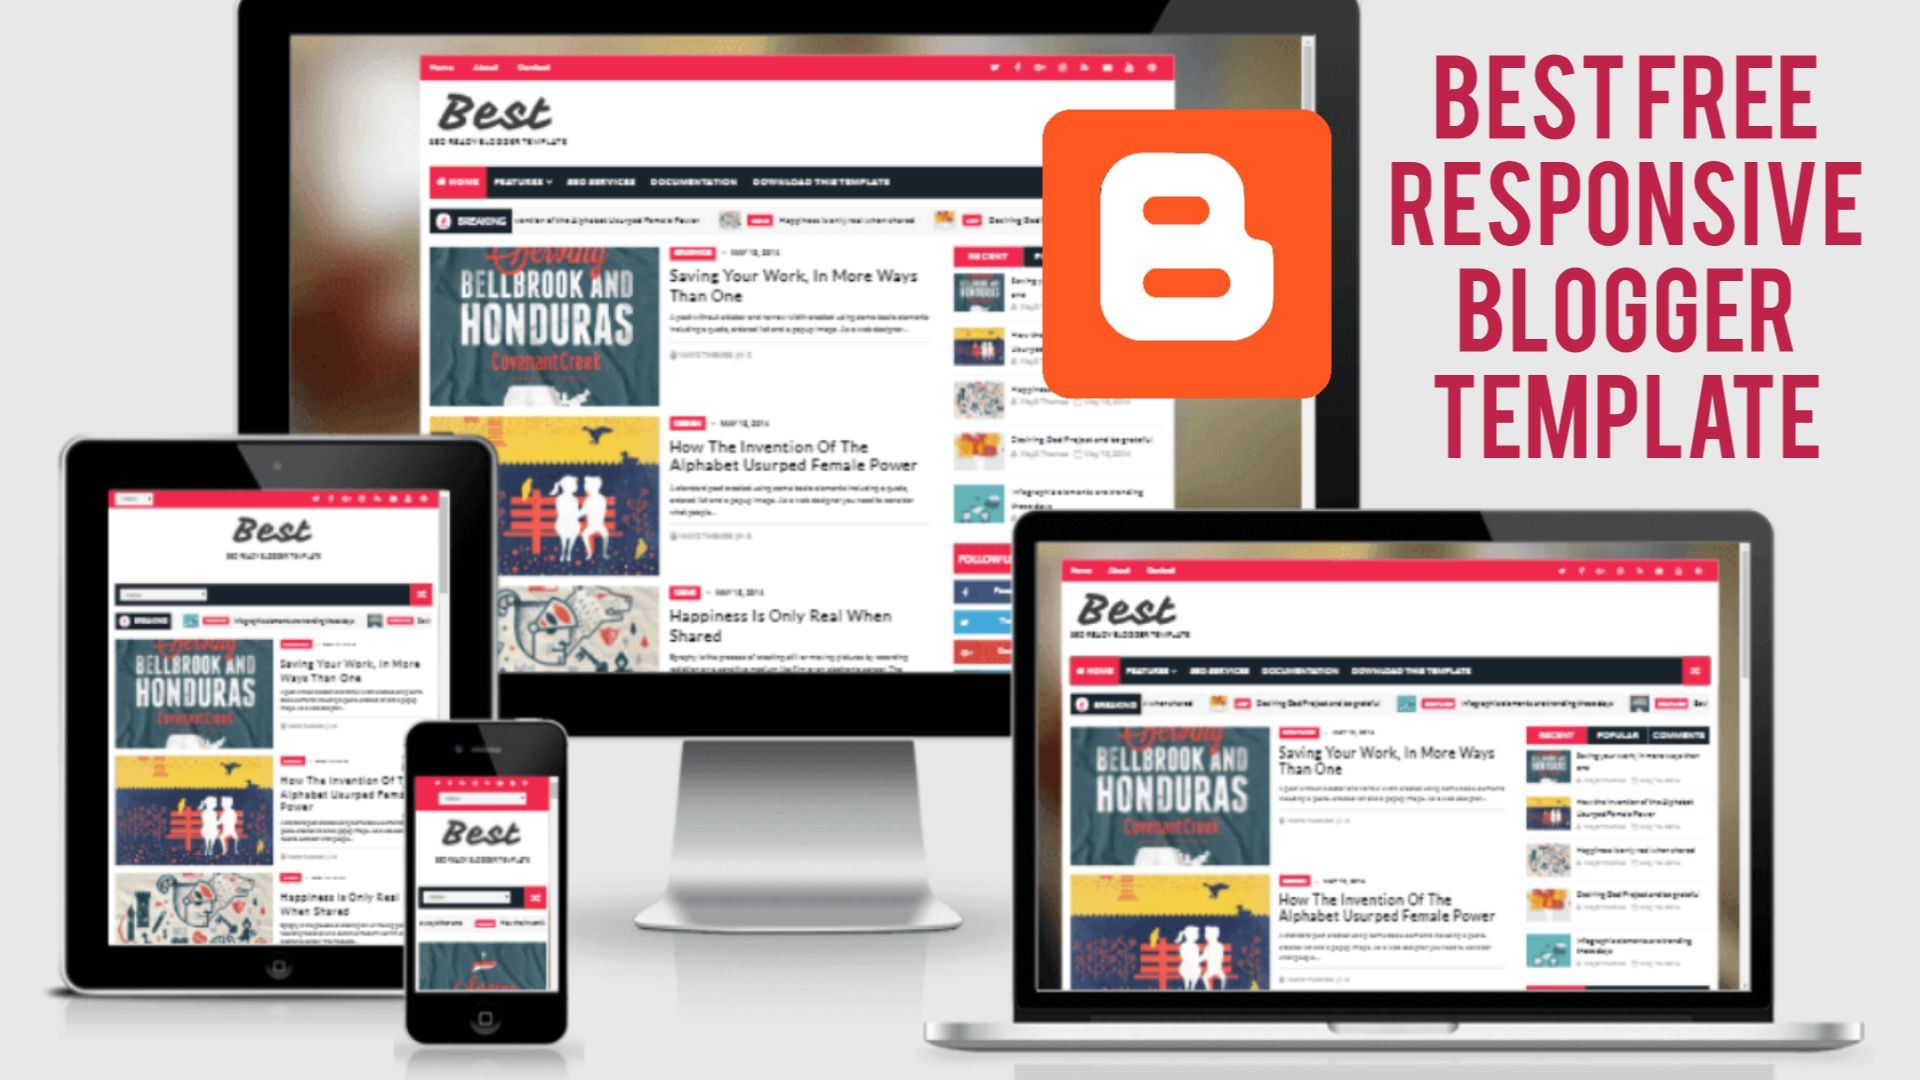 007 Stunning Best Free Blogger Template Image  Templates Responsive 2019 20201920